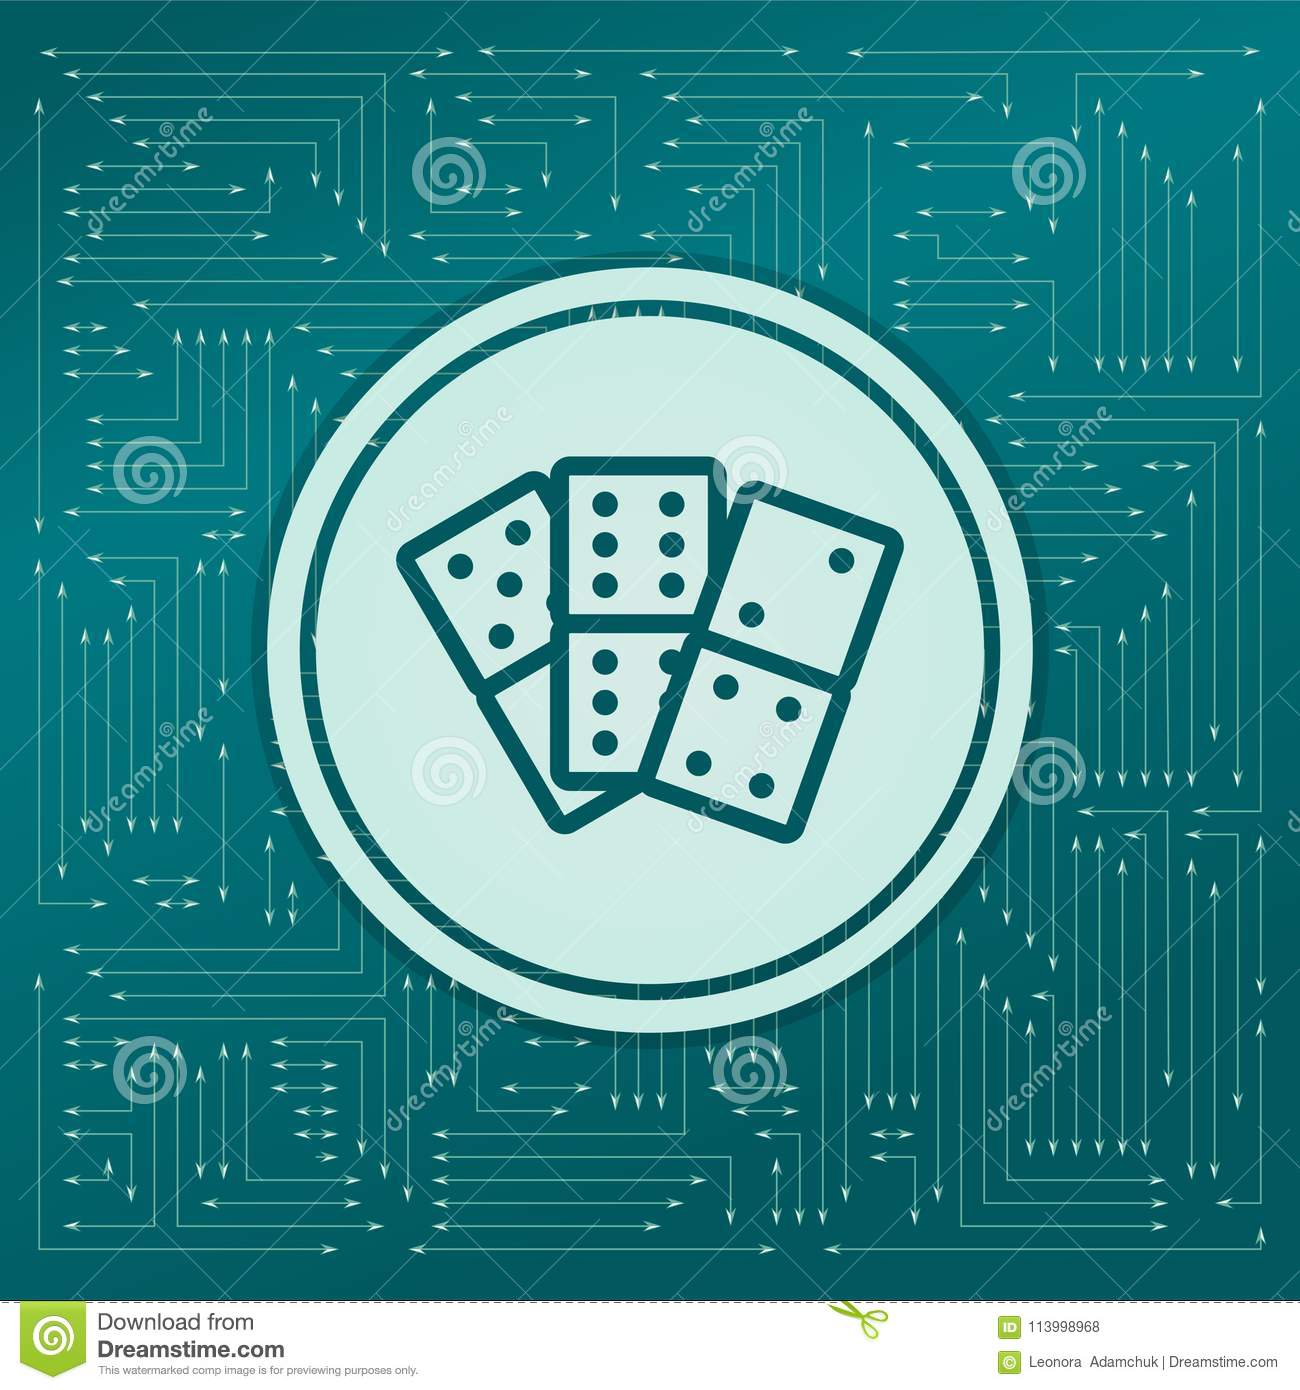 Domino icon on a green background, with arrows in different directions. It appears on the electronic board.